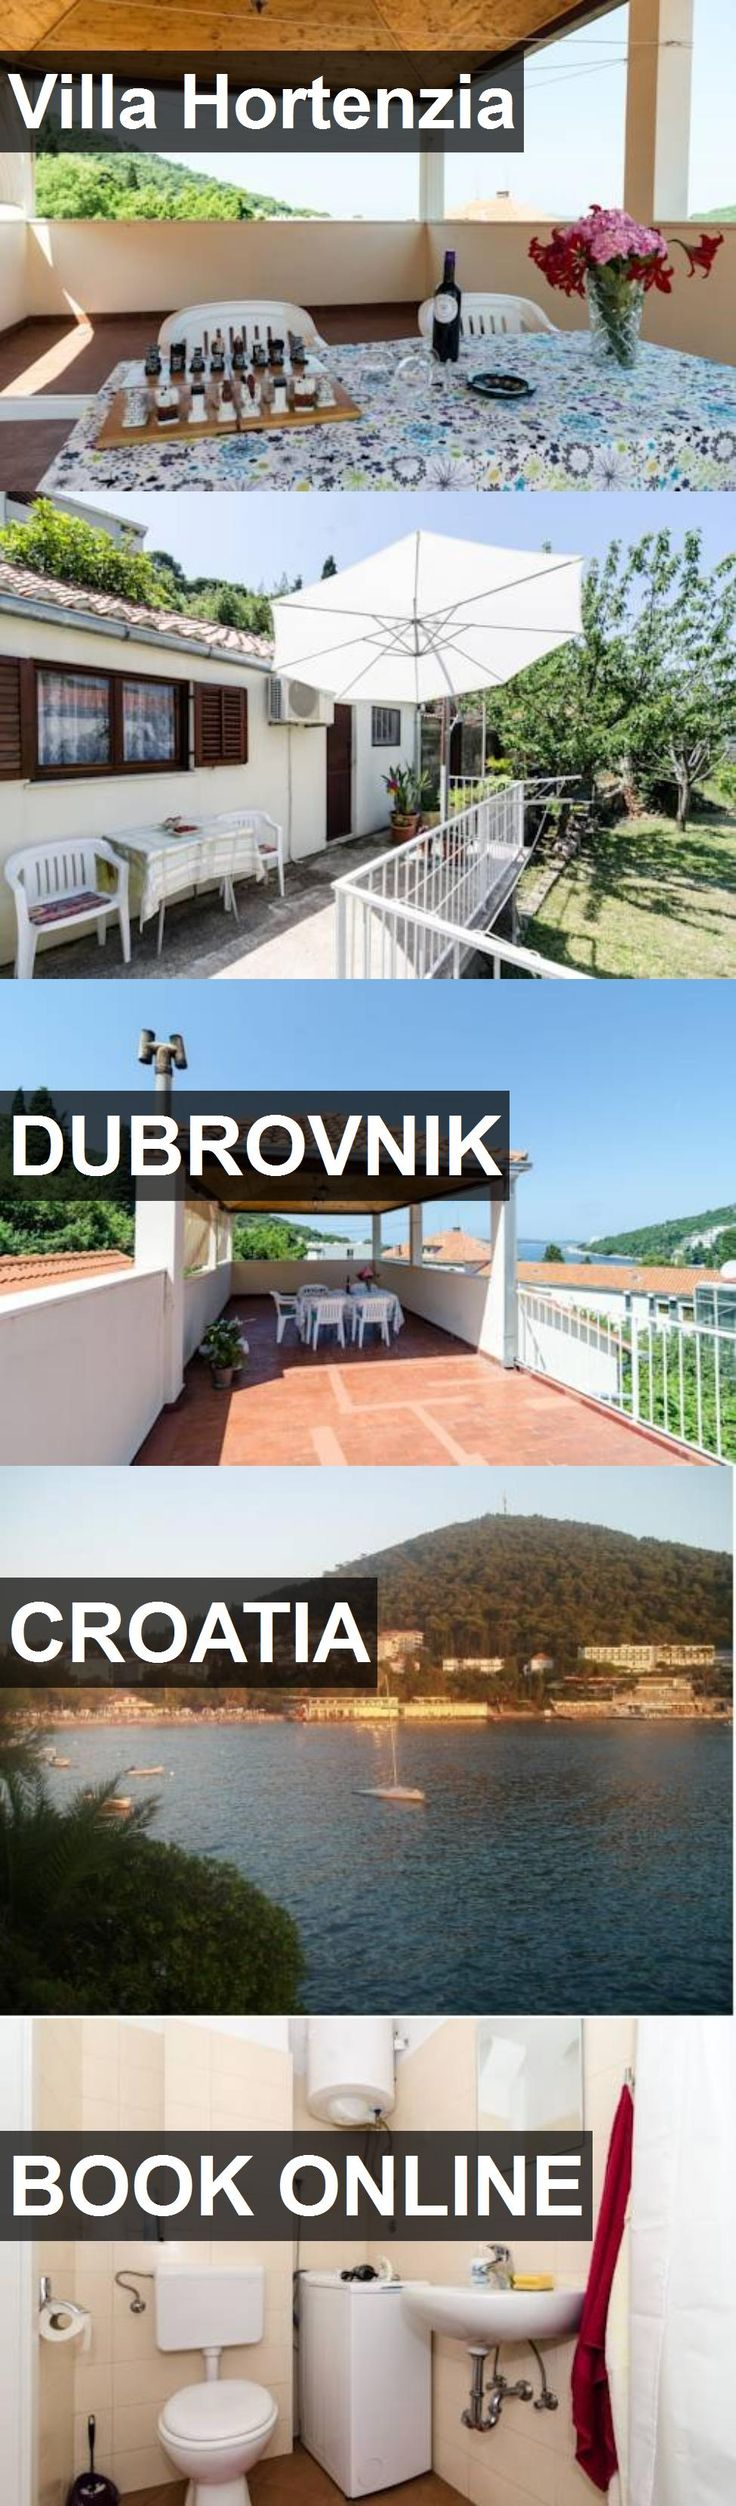 Hotel Villa Hortenzia in Dubrovnik, Croatia. For more information, photos, reviews and best prices please follow the link. #Croatia #Dubrovnik #VillaHortenzia #hotel #travel #vacation